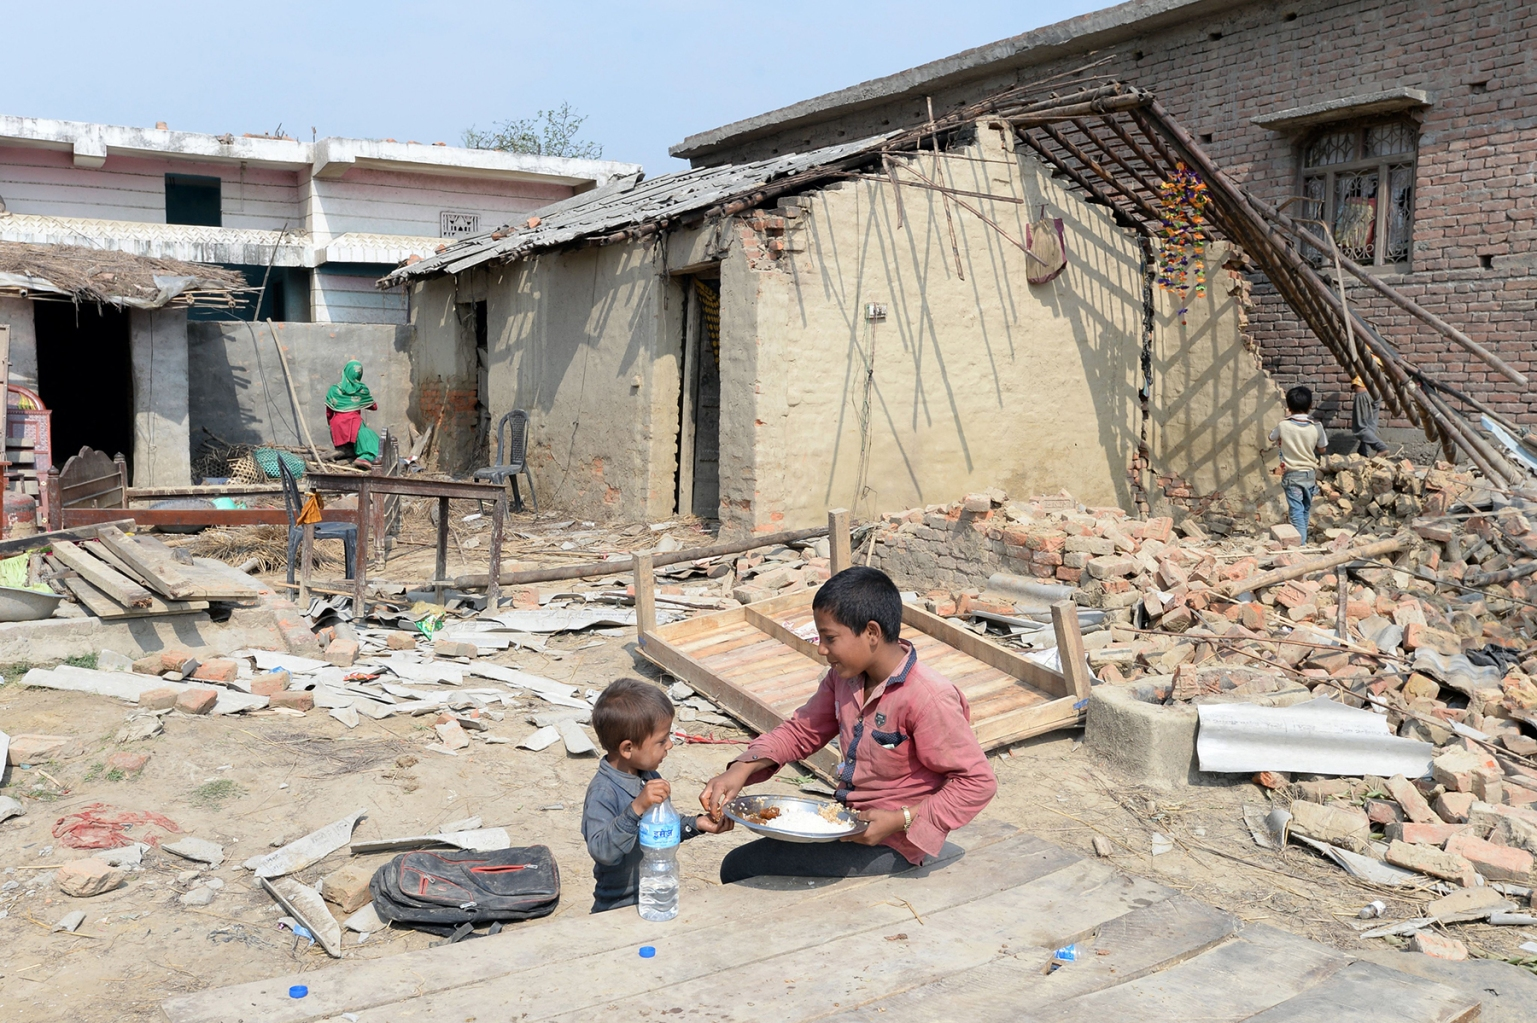 Nepali children eat next to damaged homes in Purainiya village in Nepal's southern Bara district on April 2 following a rare spring storm that tore down houses and overturned vehicles as it swept across the region killing at least 27 people. PRAKASH MATHEMA/AFP/Getty Images